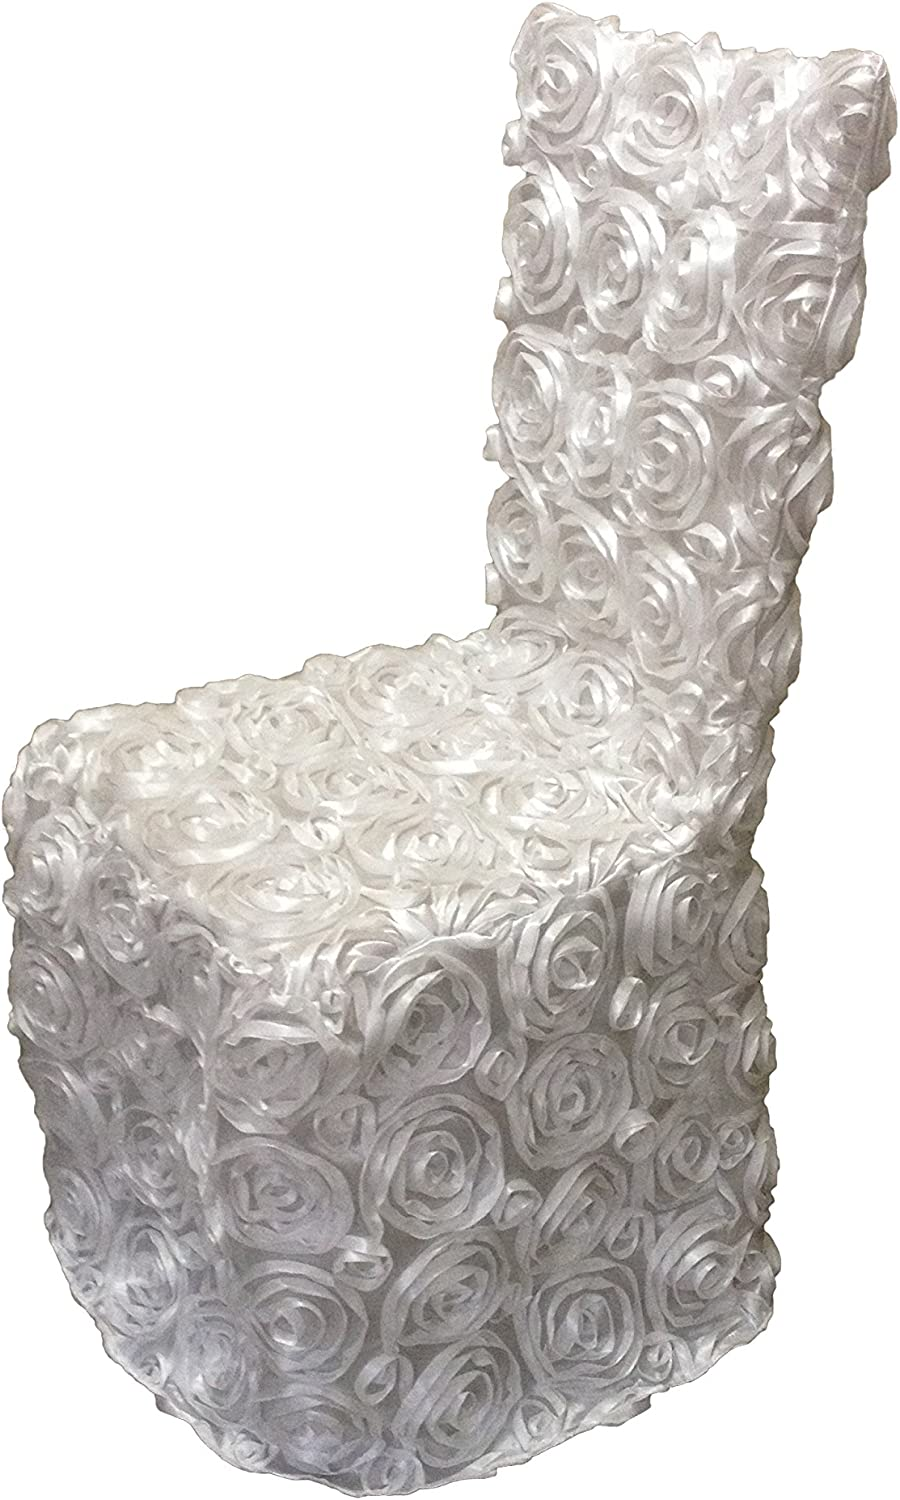 Luchuan White Rosette Banquet Chair Cover for Wedding